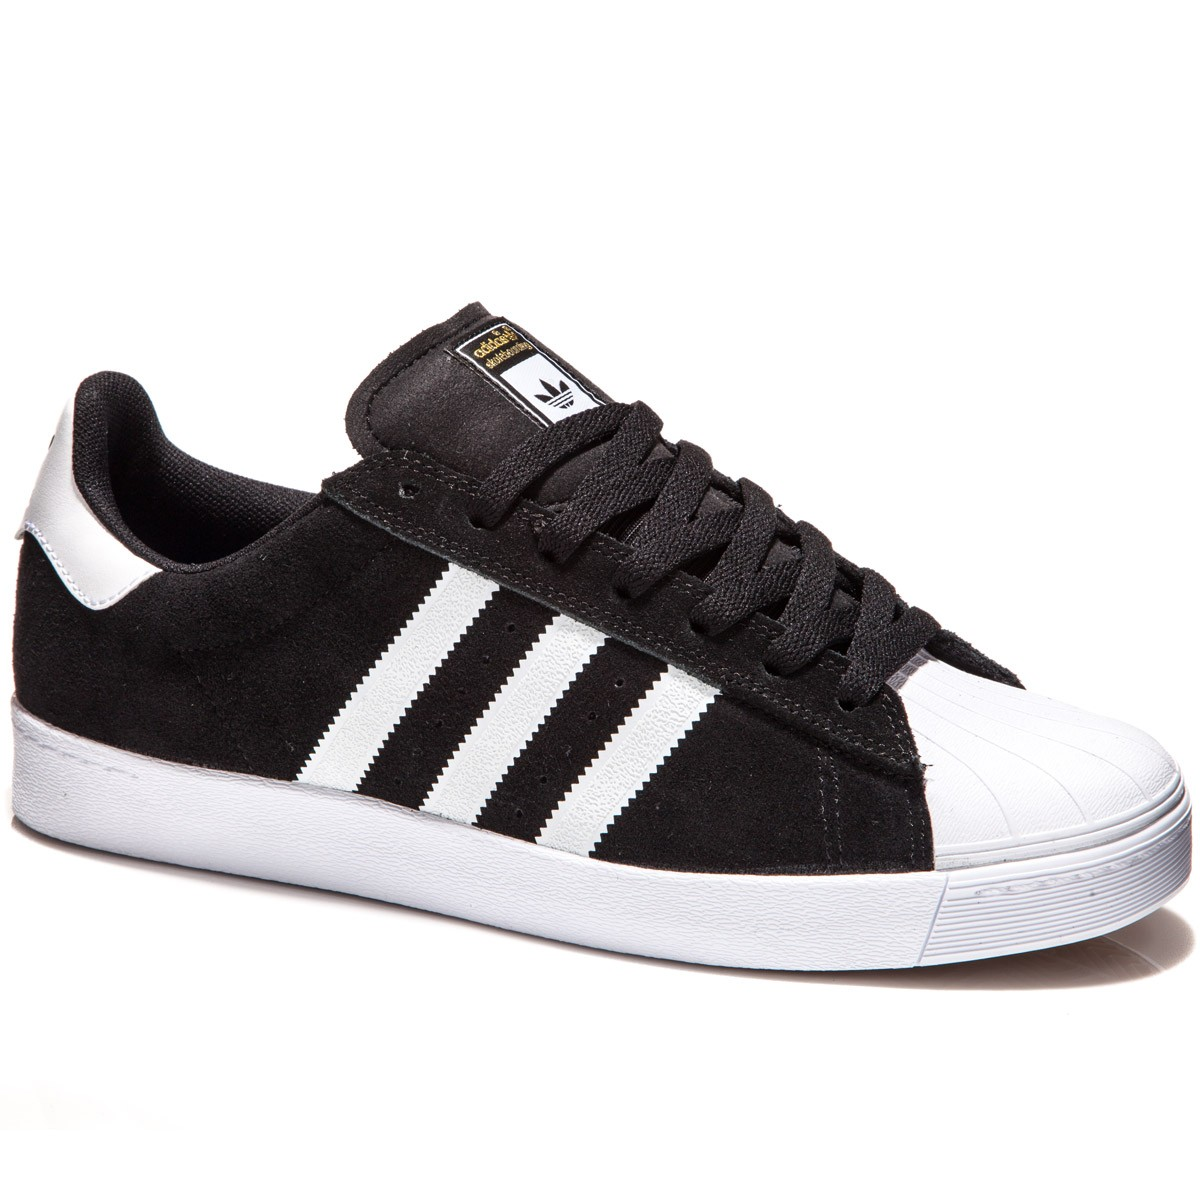 Cheap Adidas superstar adv vulc review Thermitech